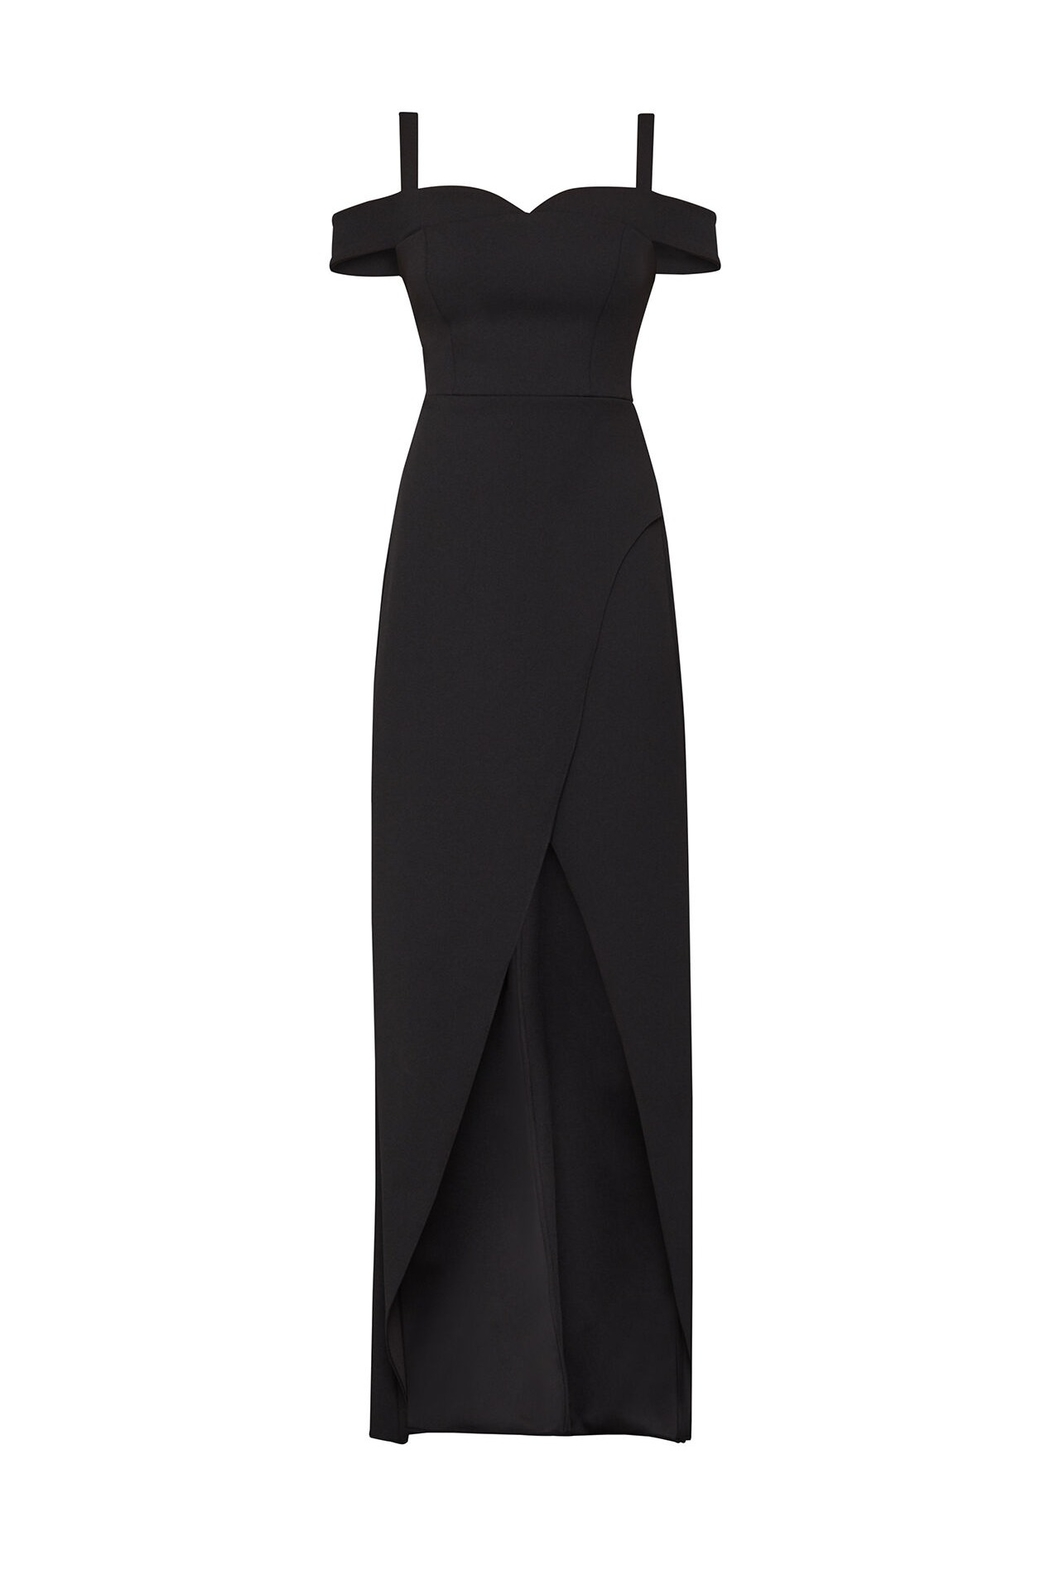 BCBG MAXAZRIA Off Shoulder Gown - Back Cropped Image